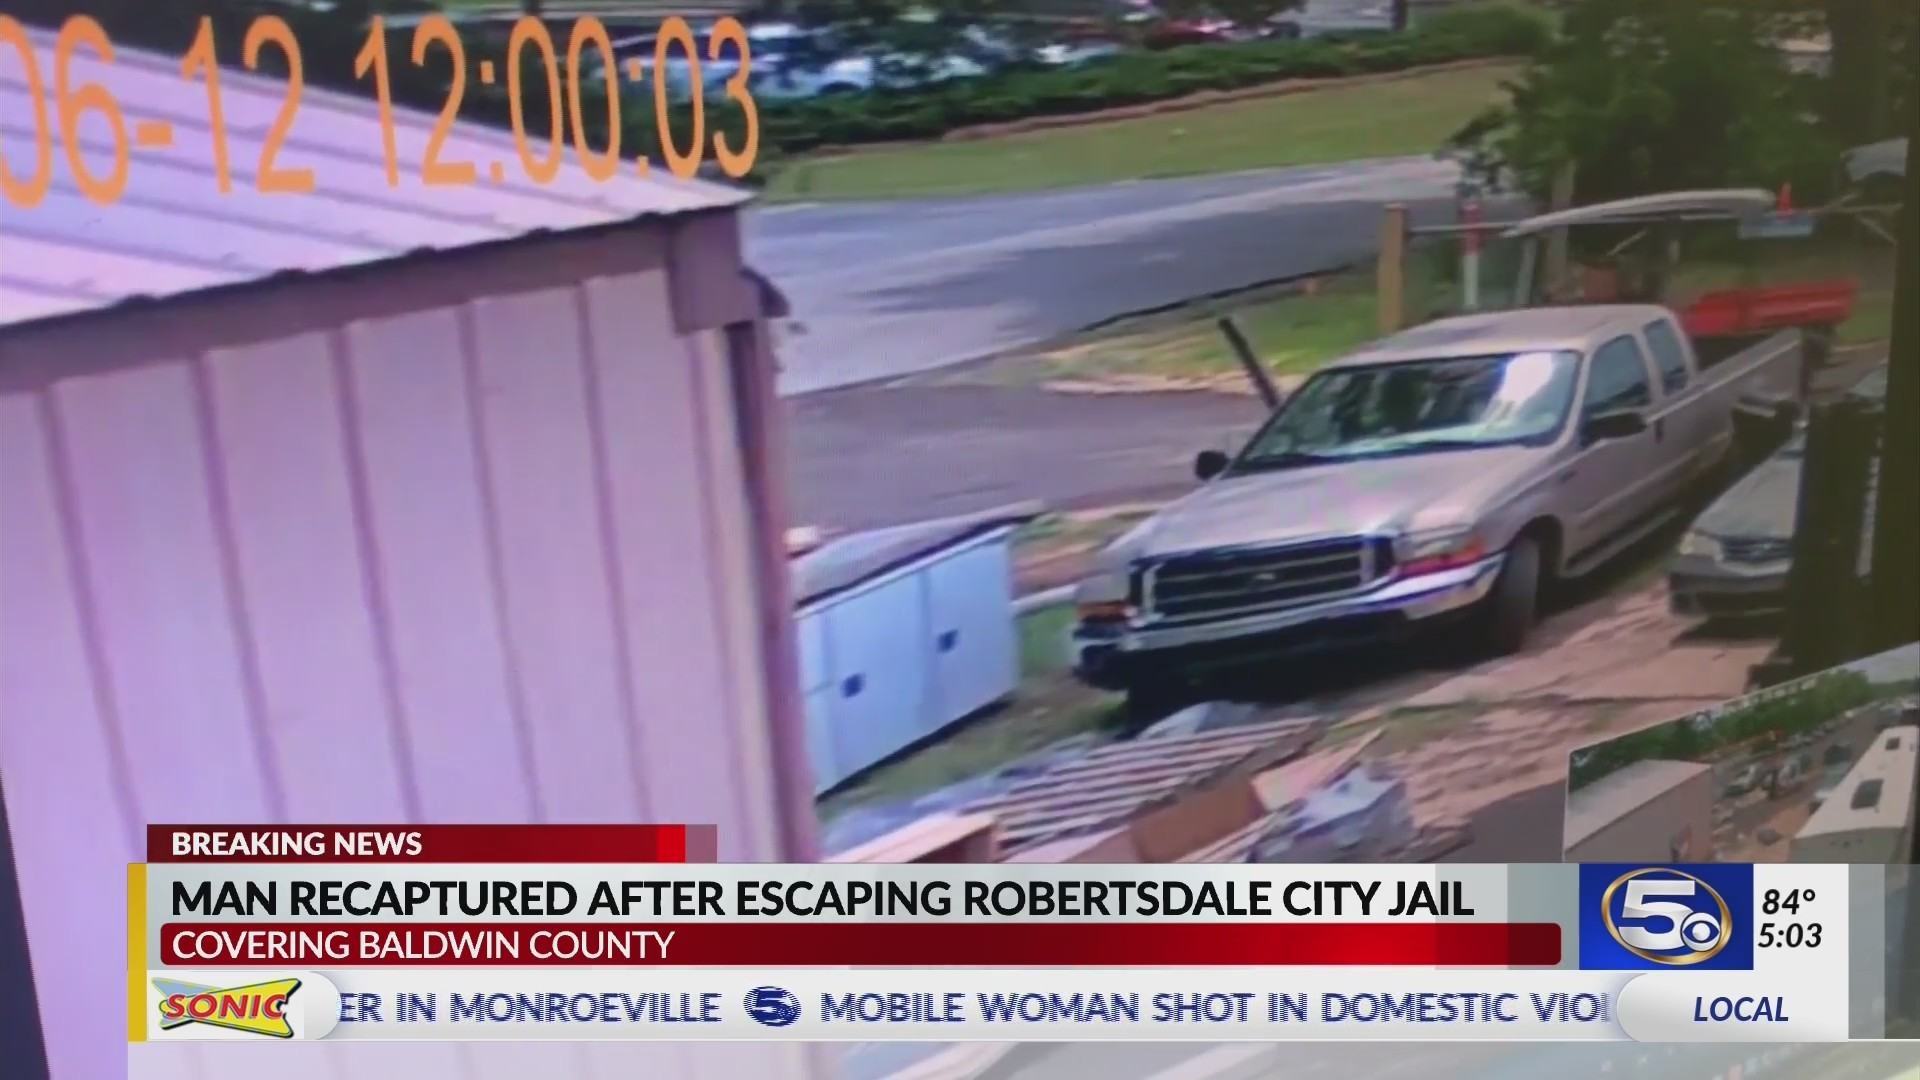 VIDEO: Man who escaped from Robertsdale jail captured after pursuit